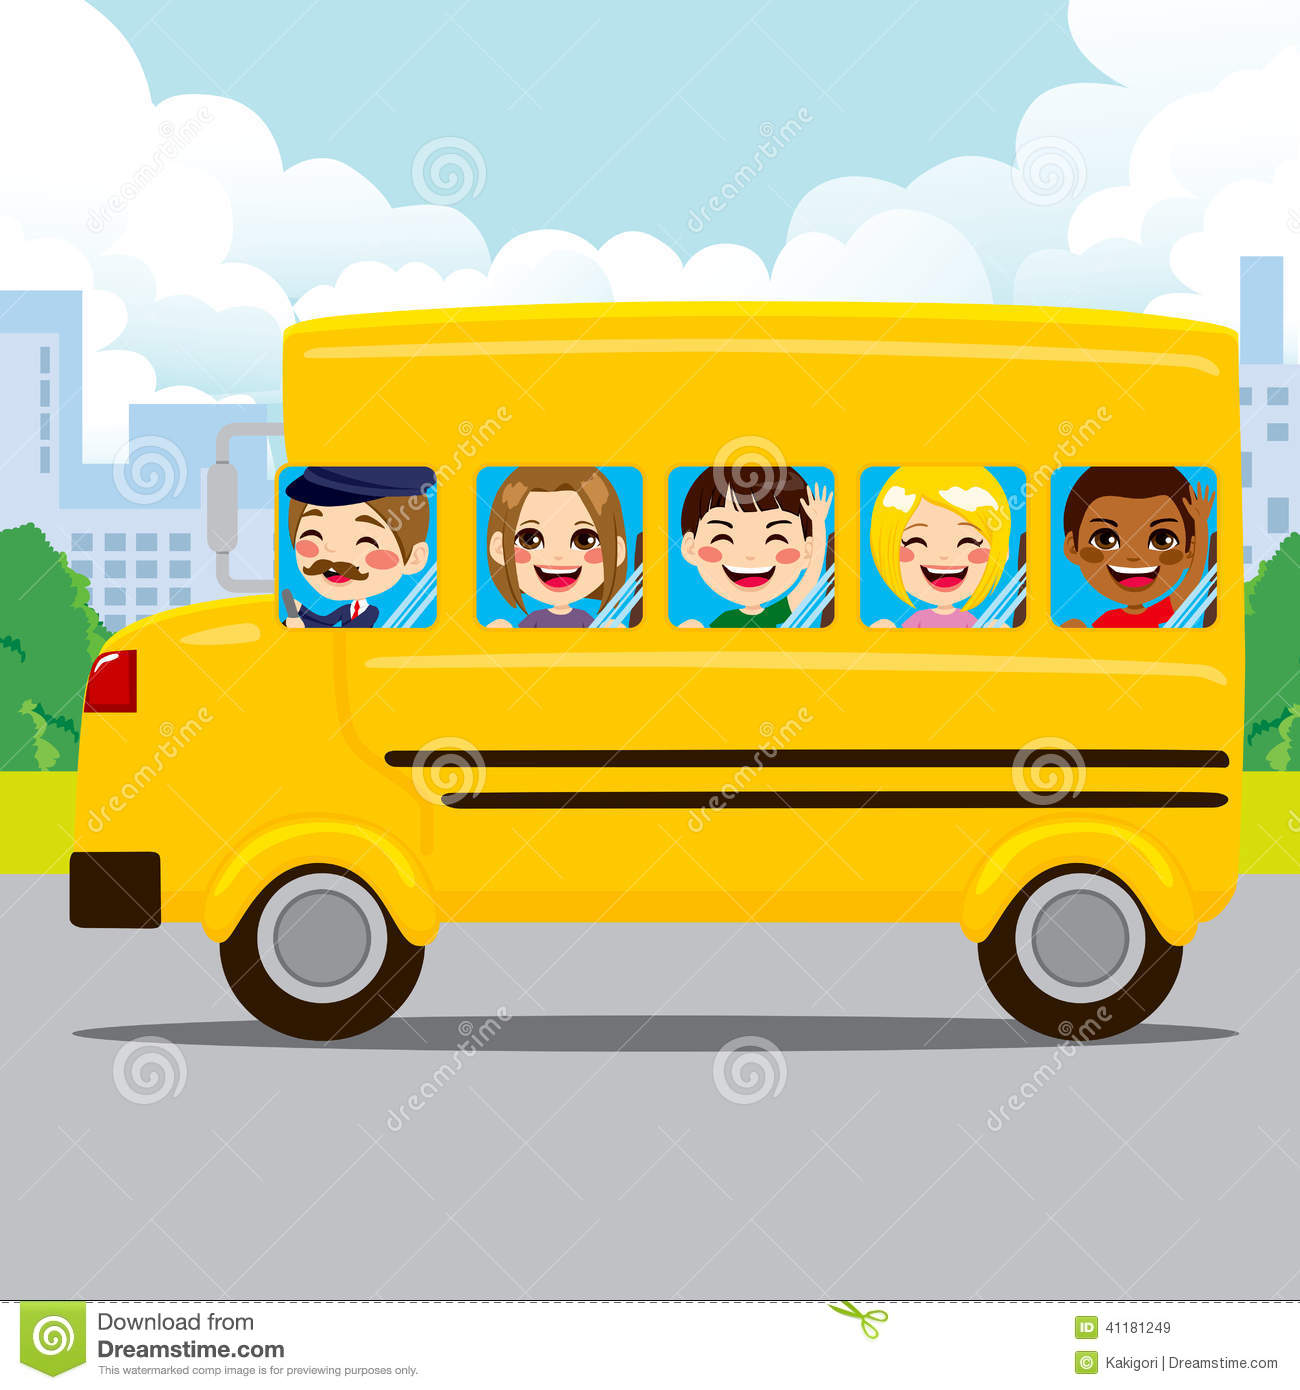 Bus Driver Clipart #1 - Royalty Free Stock Illustrations & Vector ...